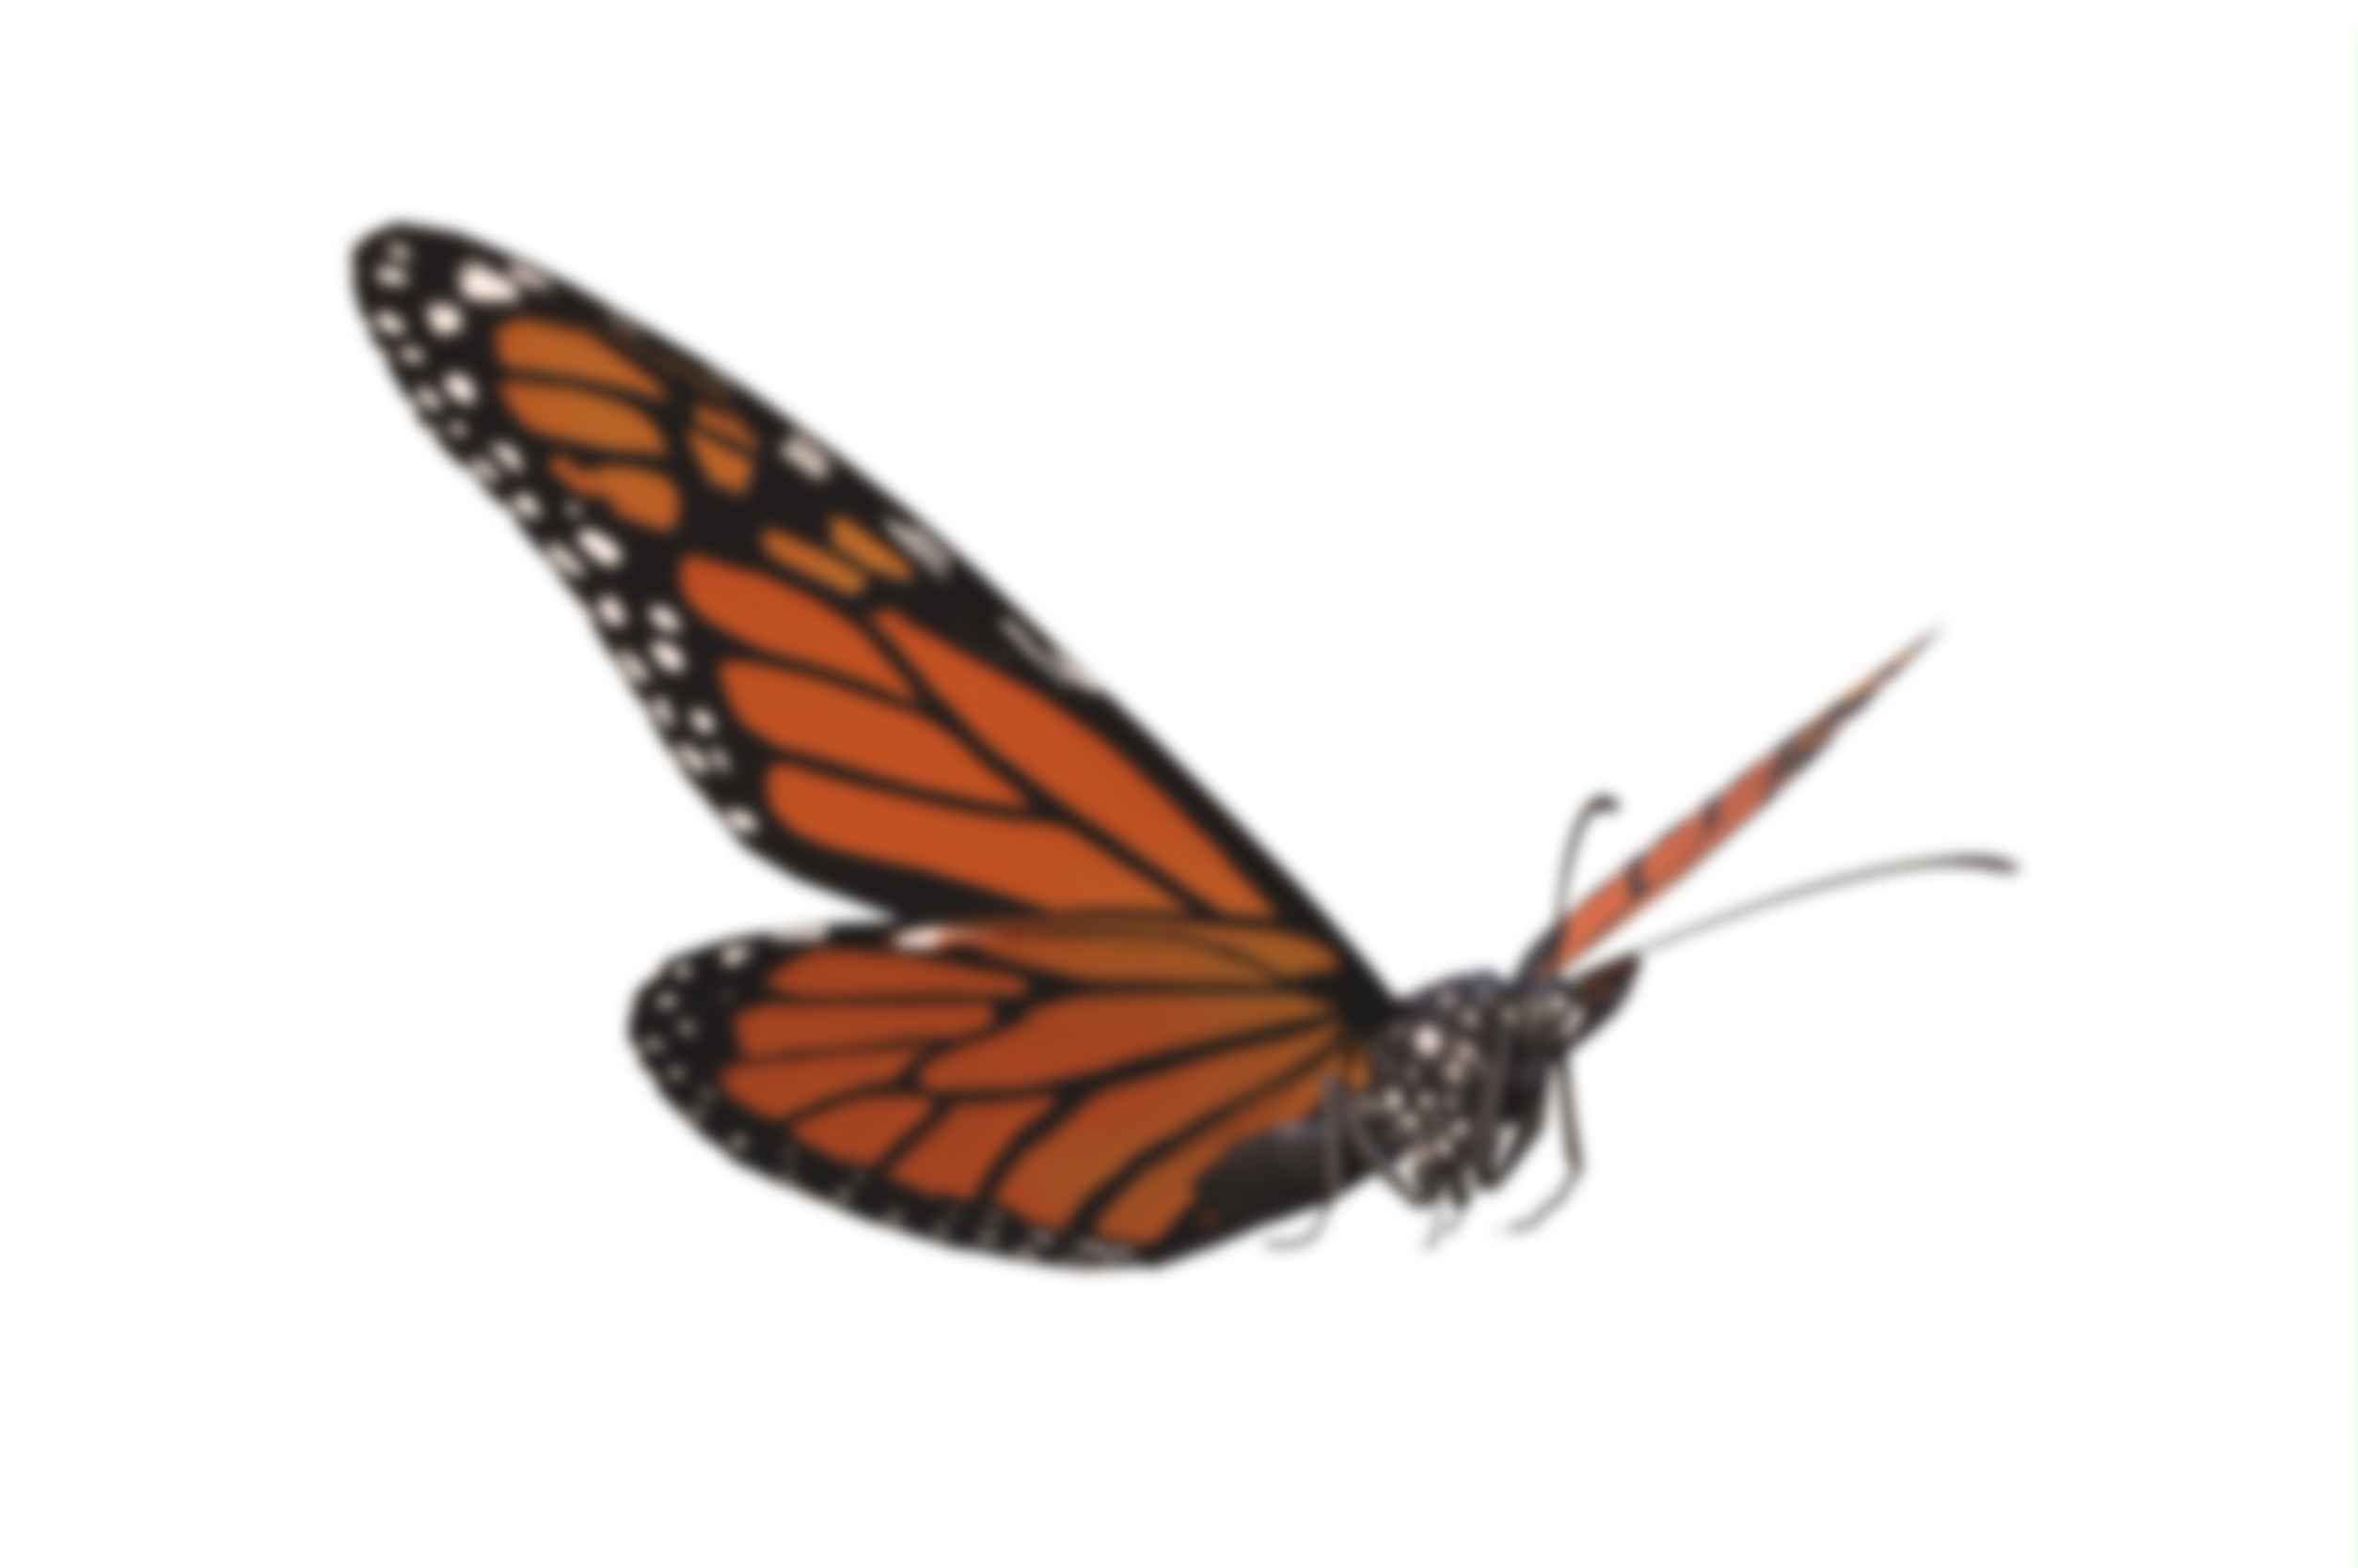 A Monarch butterfly floating and flying.